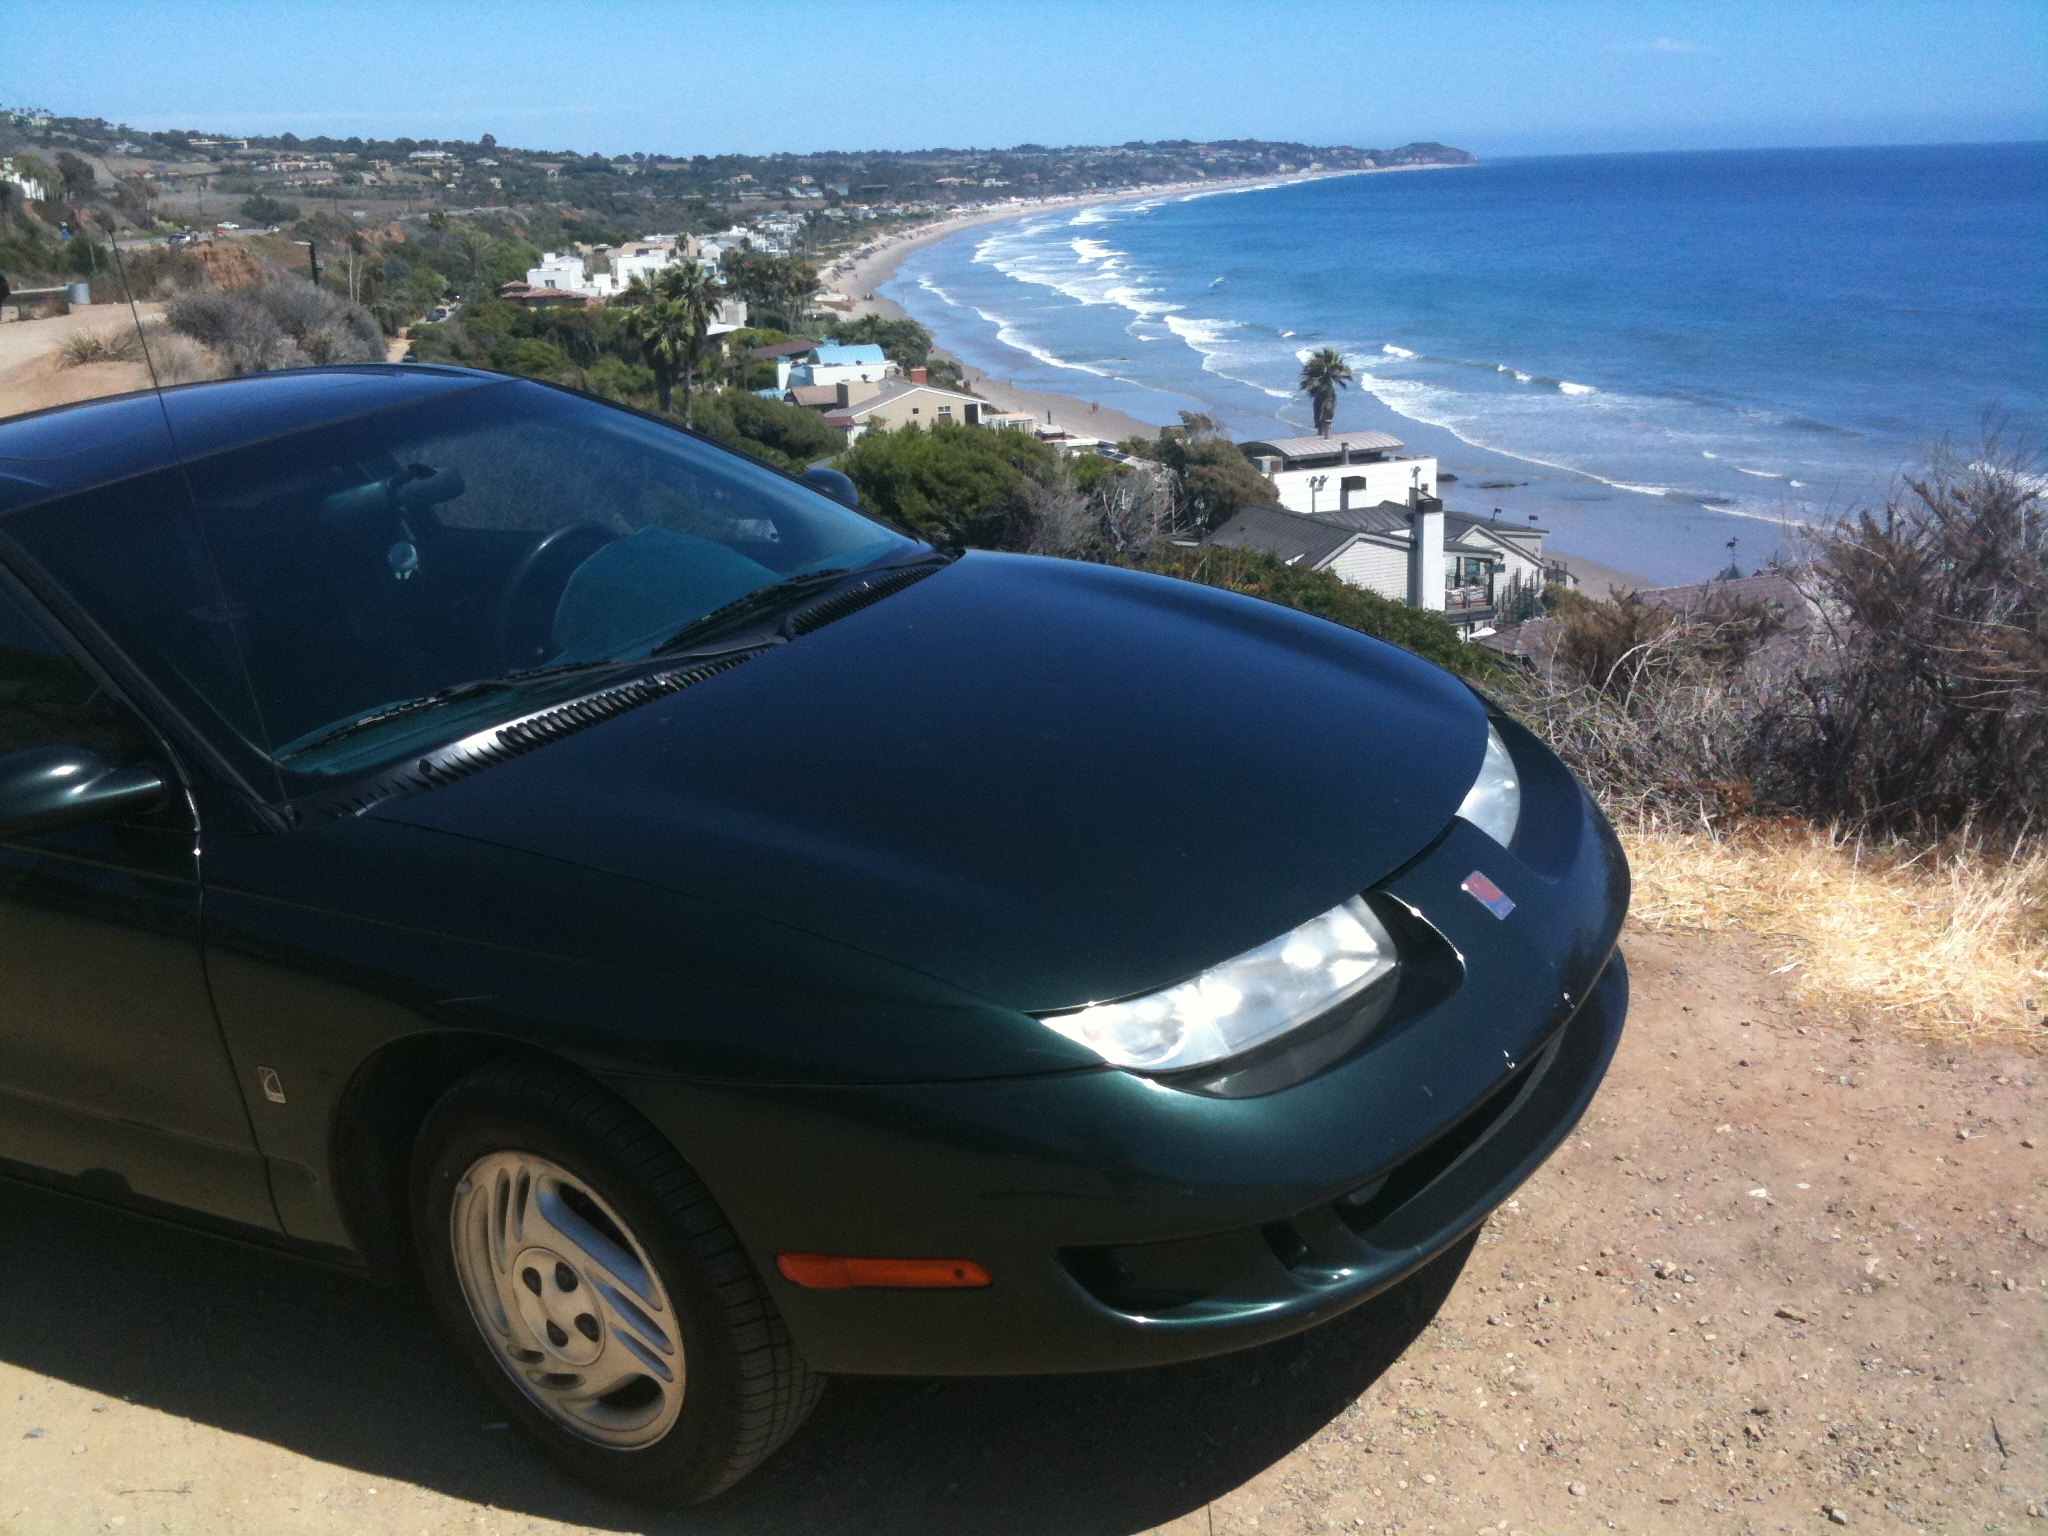 Photo:  My car overlooking the Pacific Ocean in Malibu, California.